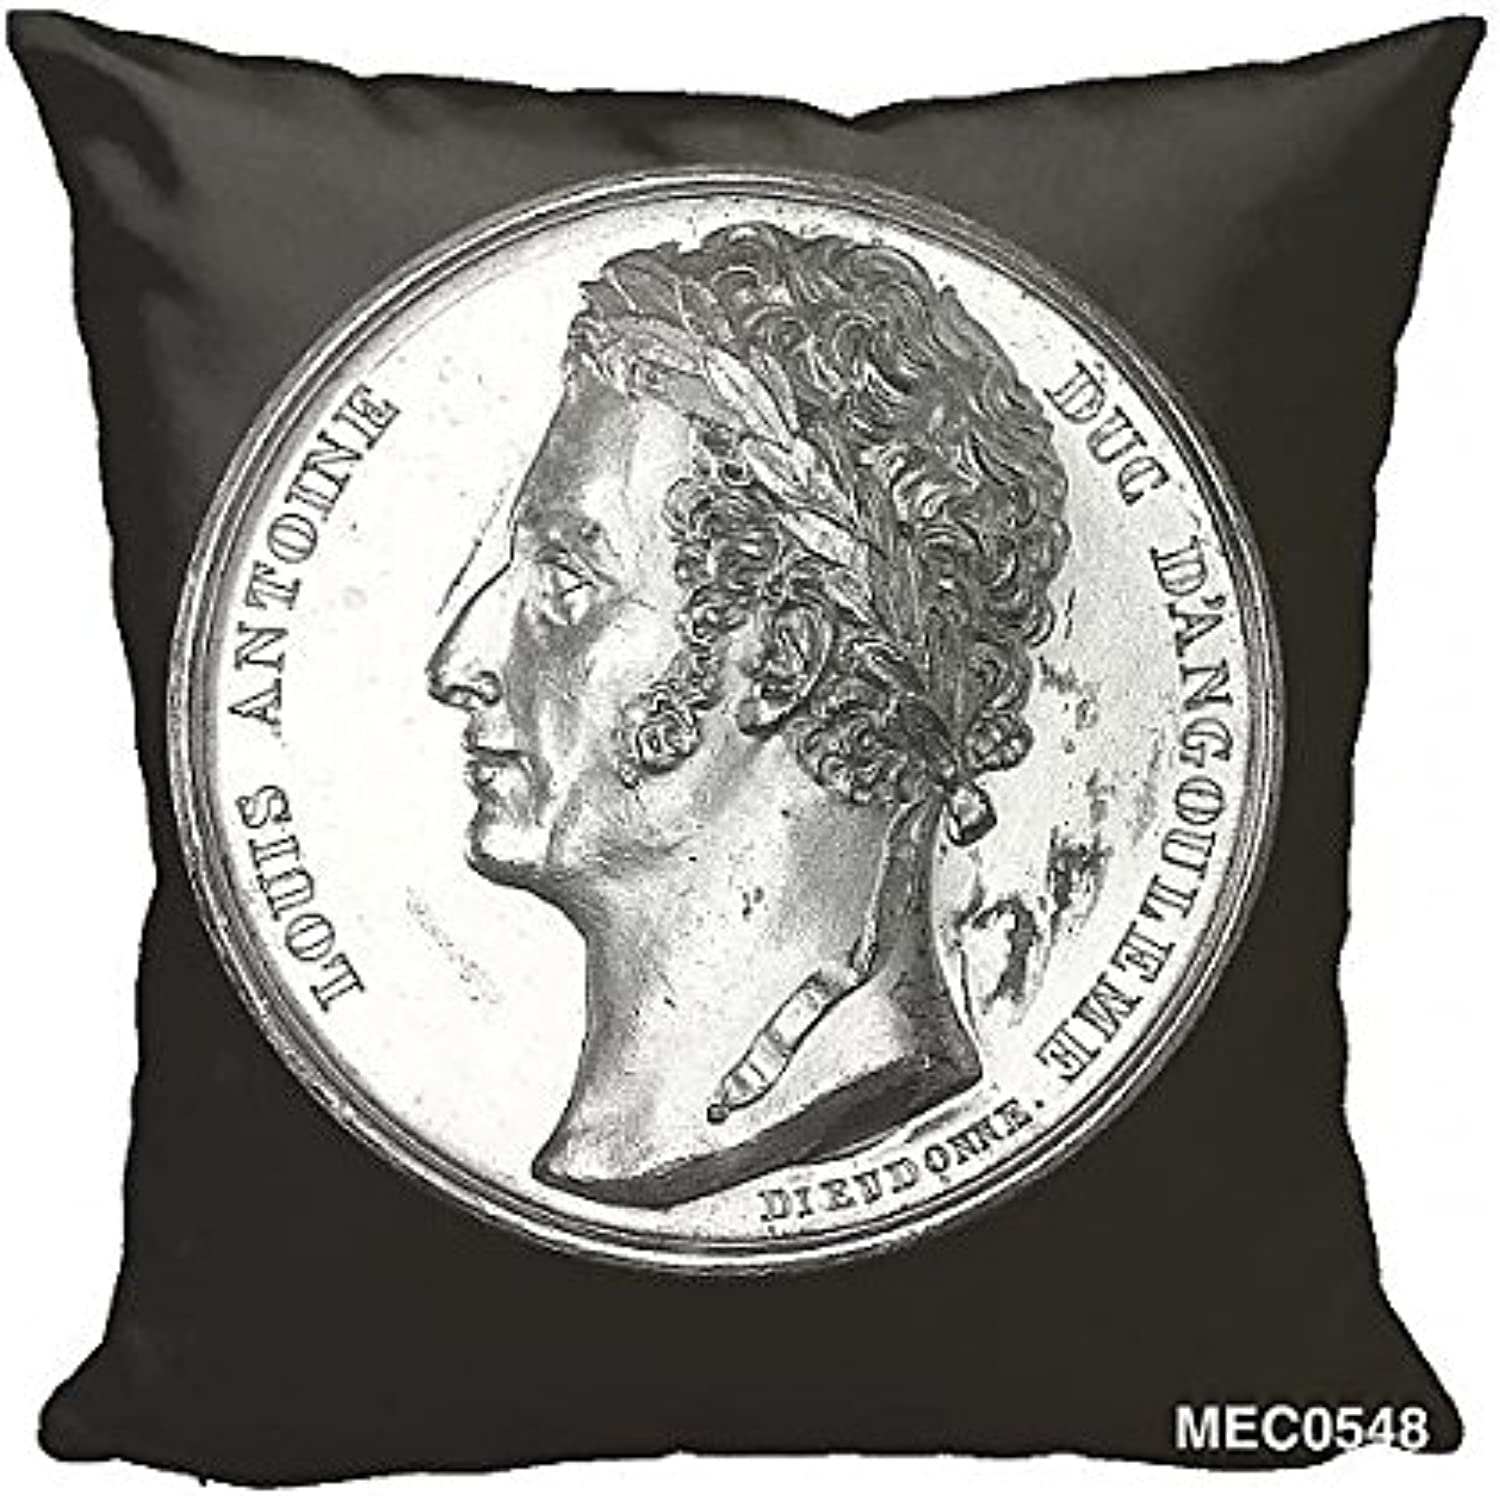 12x12 Cushion of Medal commemorating Admiral Duc d Angoulme and the capture of Cadiz, 1823 (3686054)